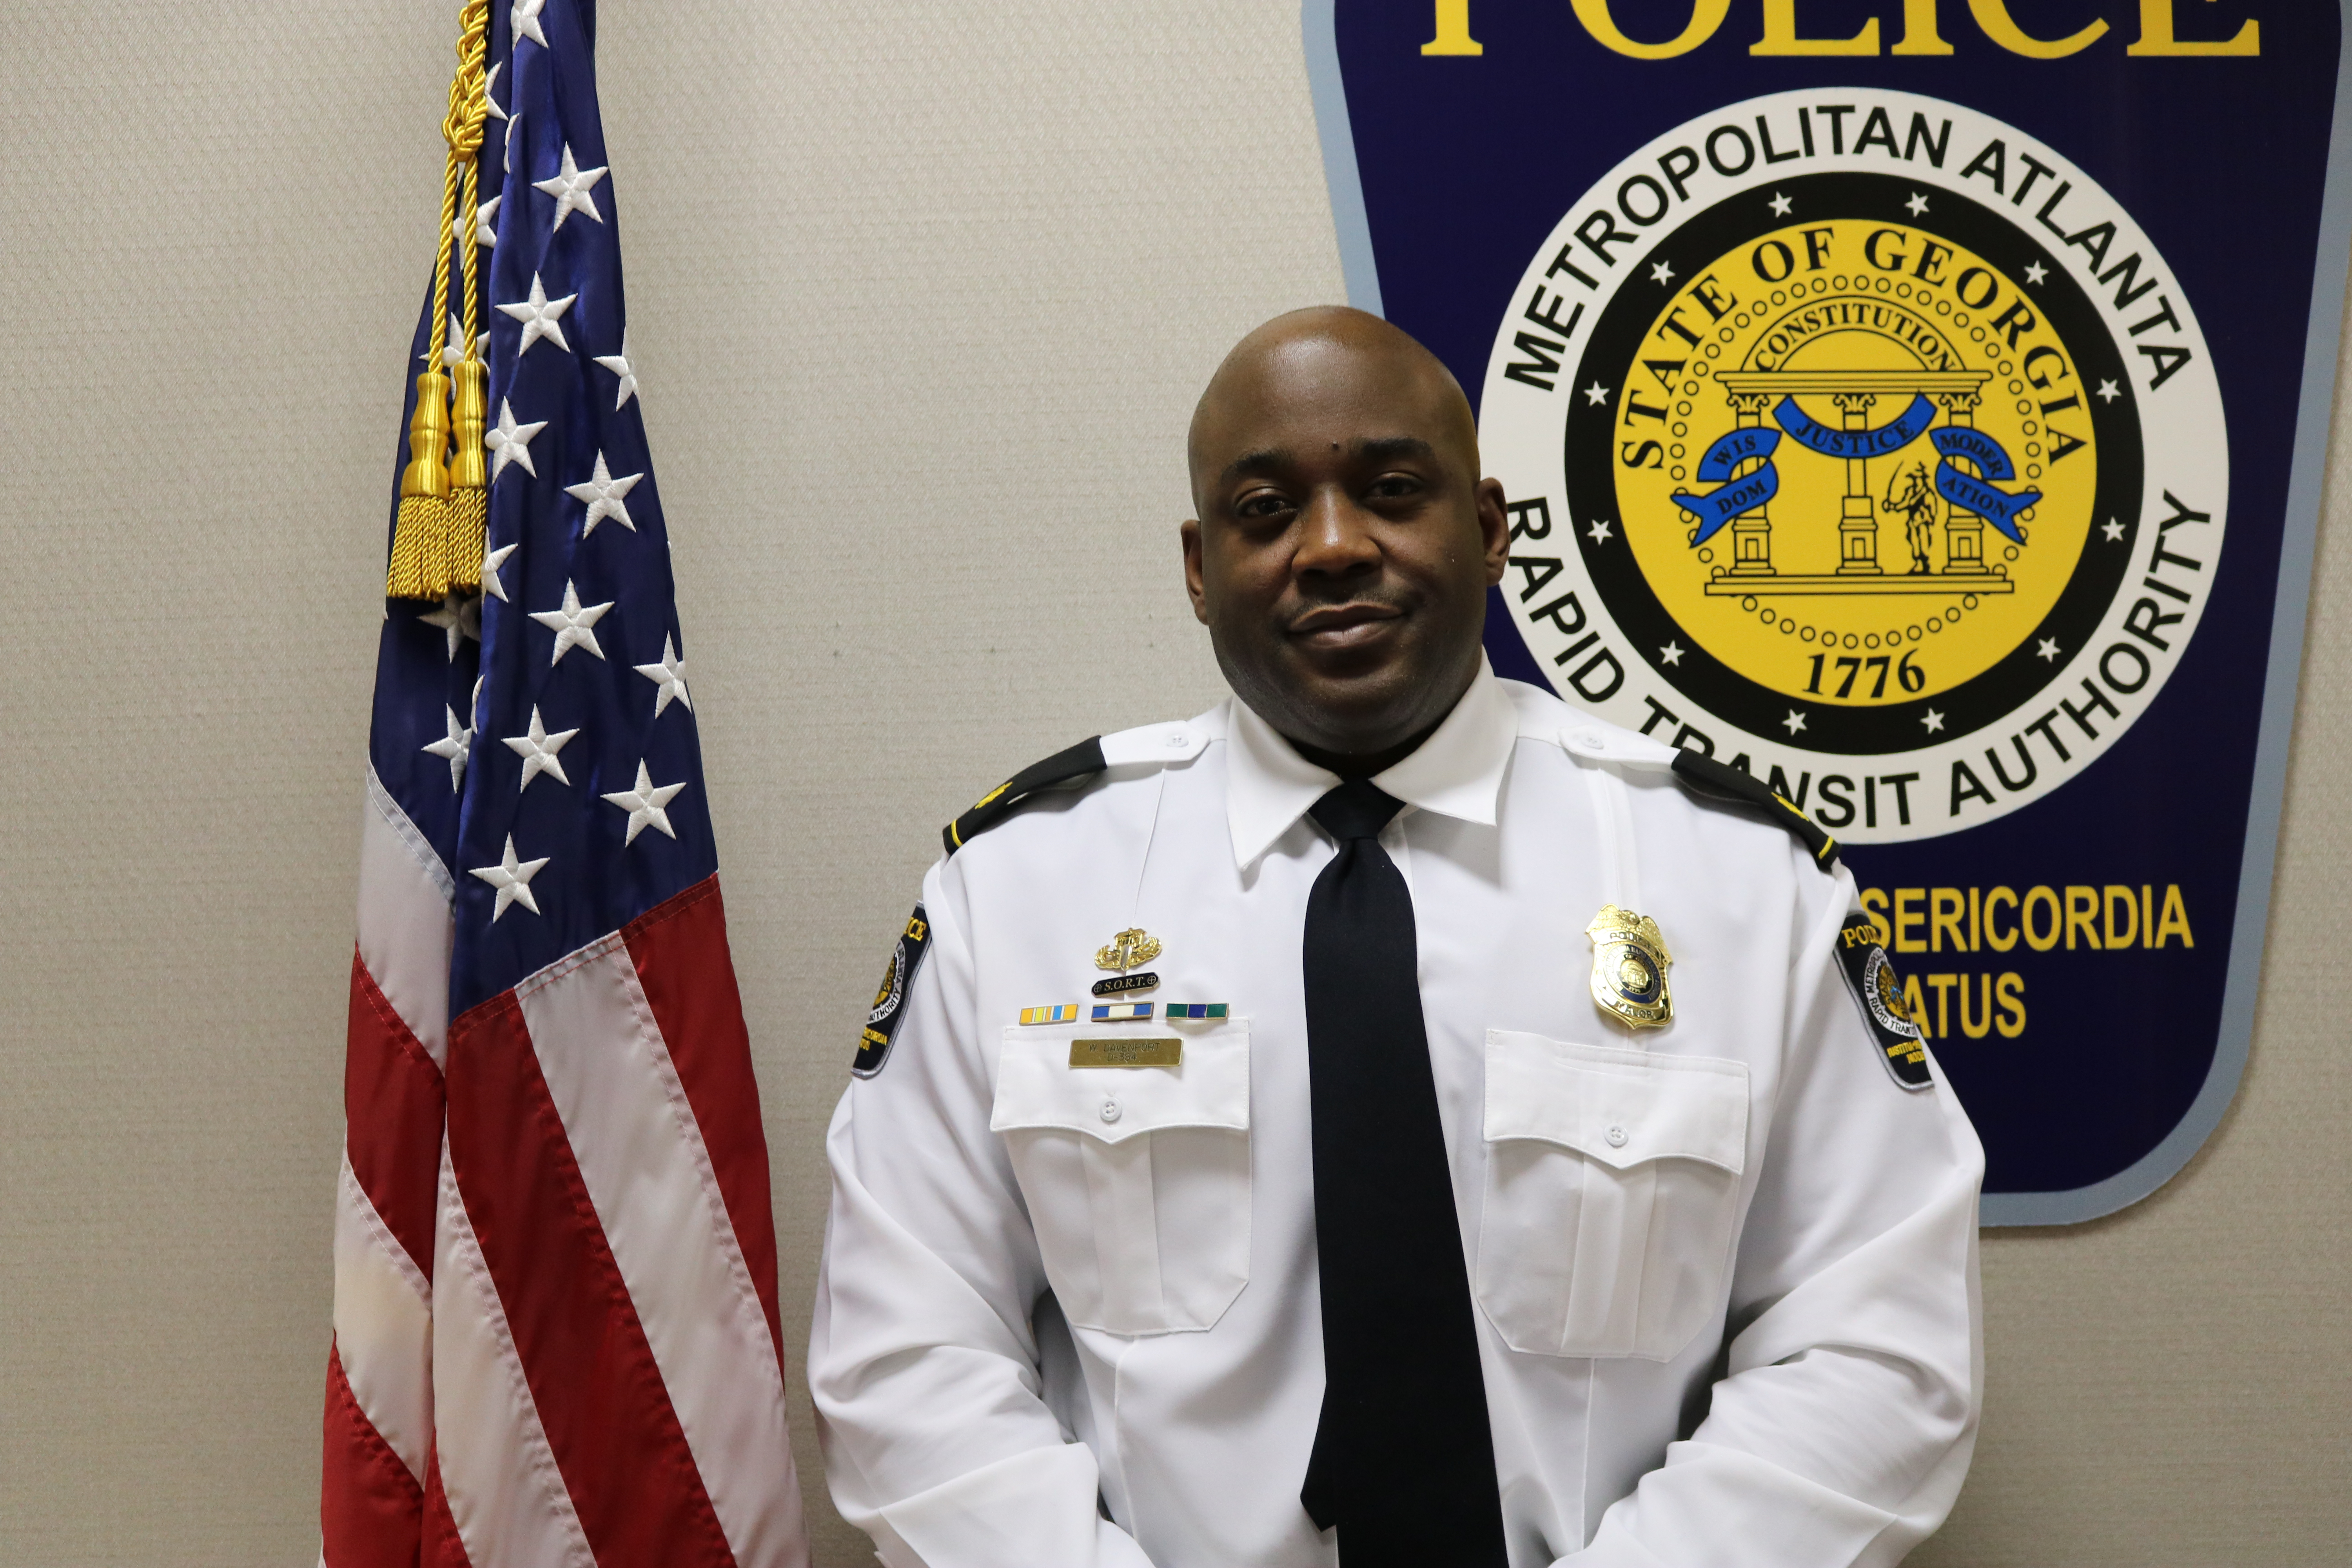 MPD Major Willie Davenport